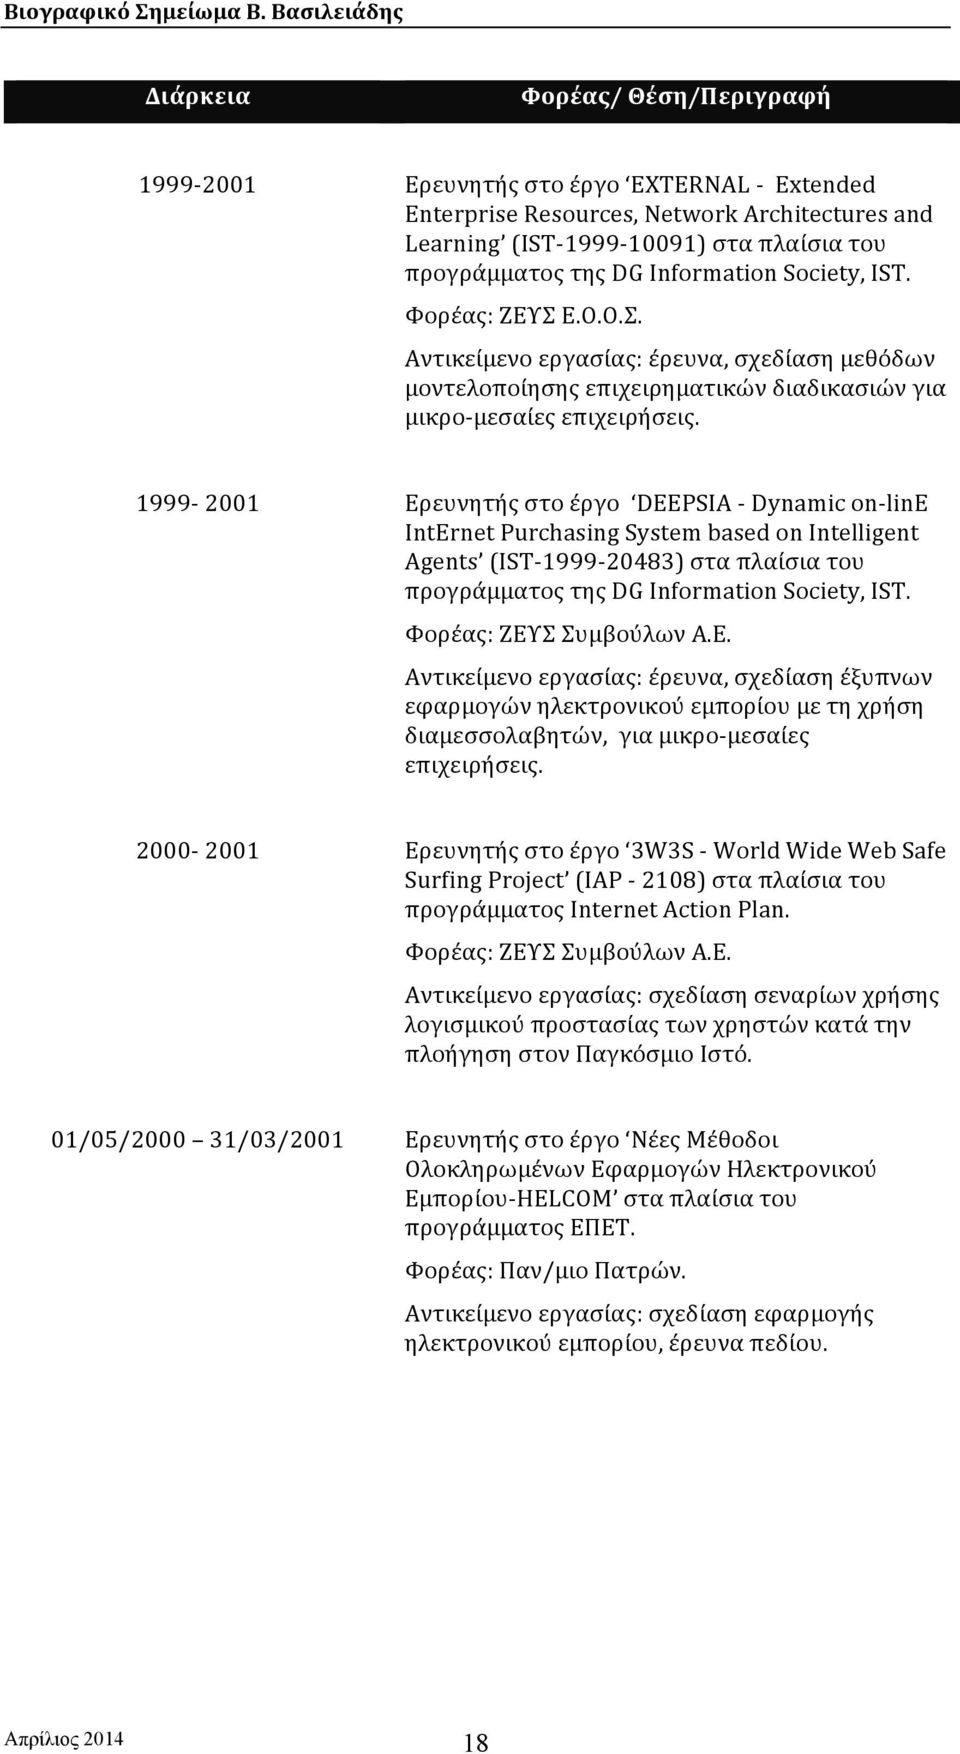 1999-2001 Ερευνητής στο έργο DEEPSIA - Dynamic on- line IntErnet Purchasing System based on Intelligent Agents (IST- 1999-20483) στα πλαίσια του προγράμματος της DG Information Society, IST.